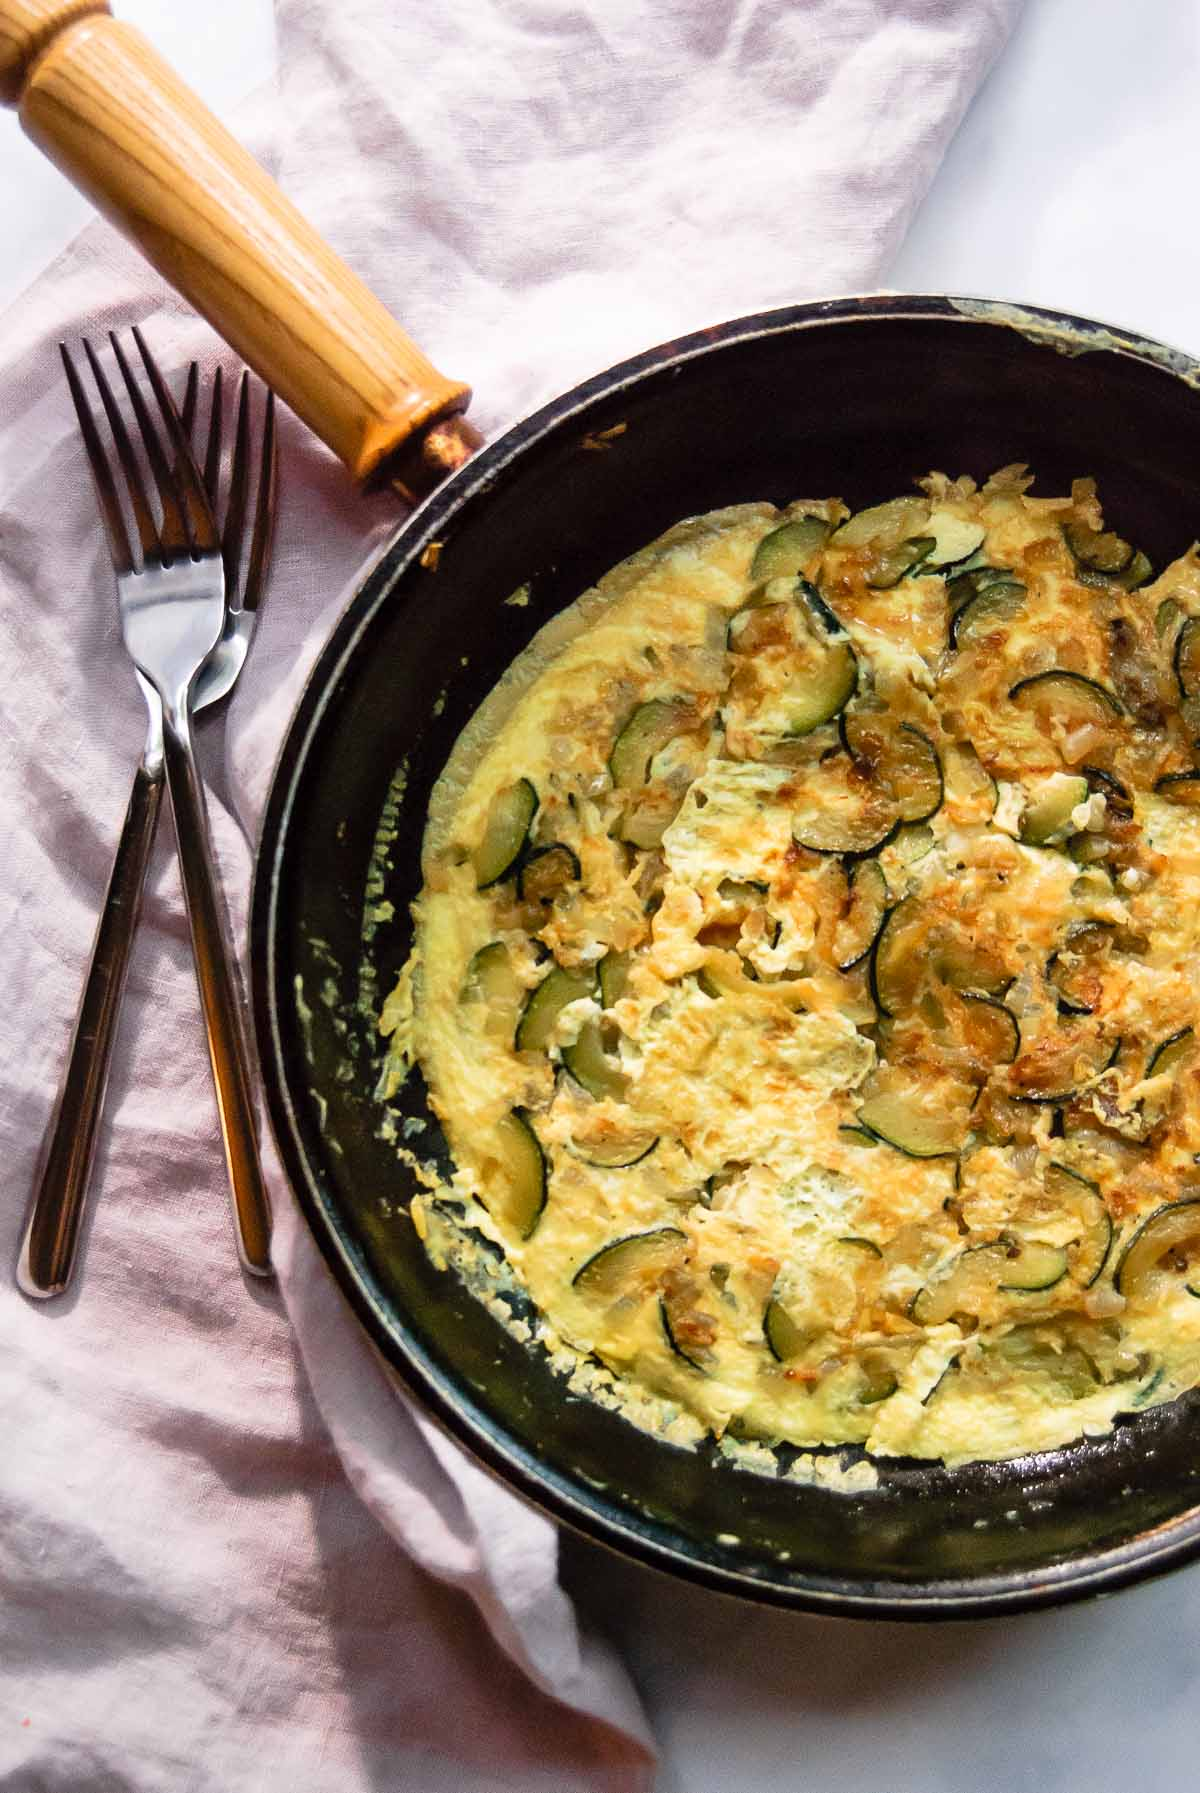 30 Healthy Dinner Recipes for Two - 20-Minute Zucchini Onion Frittata for Two via The Beader Chef | https://www.roseclearfield.com